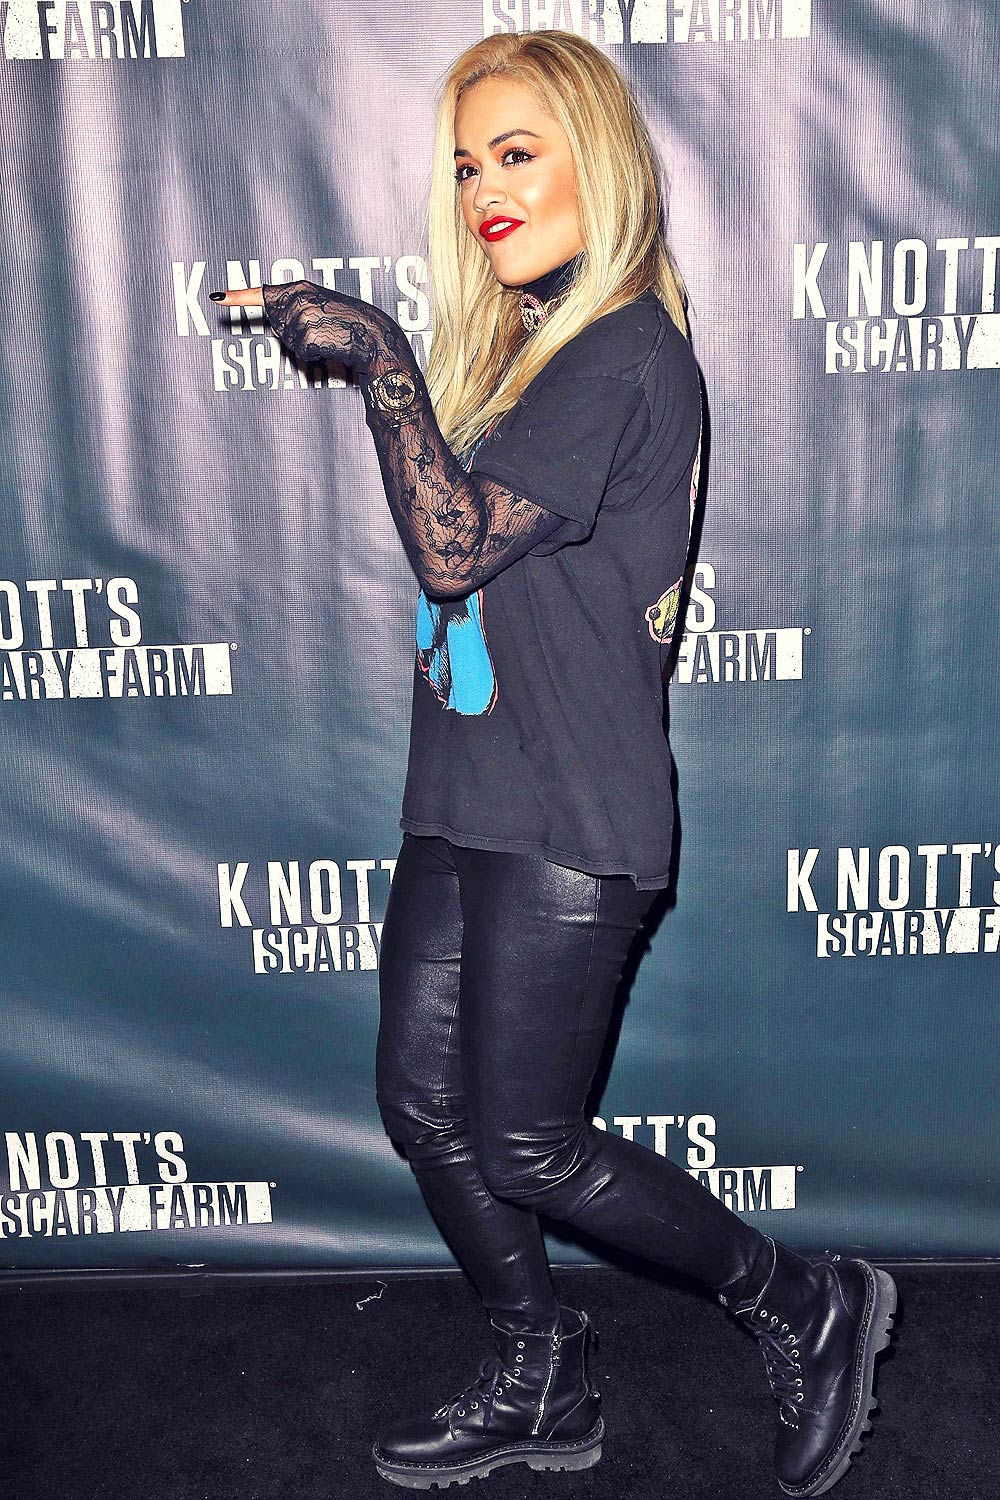 Rita Ora attends Knott's Scary Farm Black Carpet